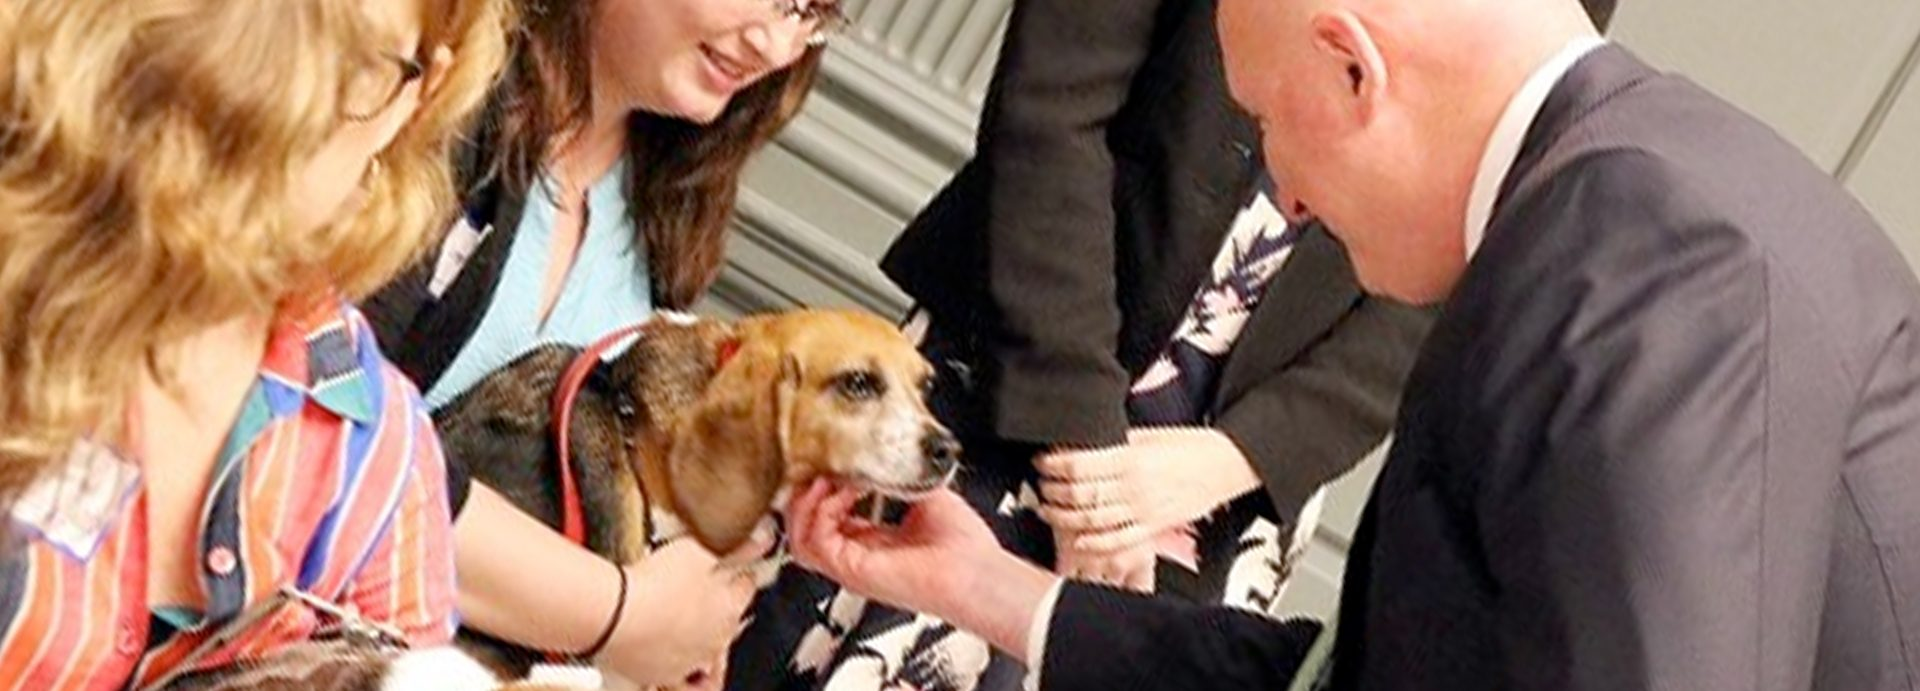 Bill spares lives of research dogs, cats